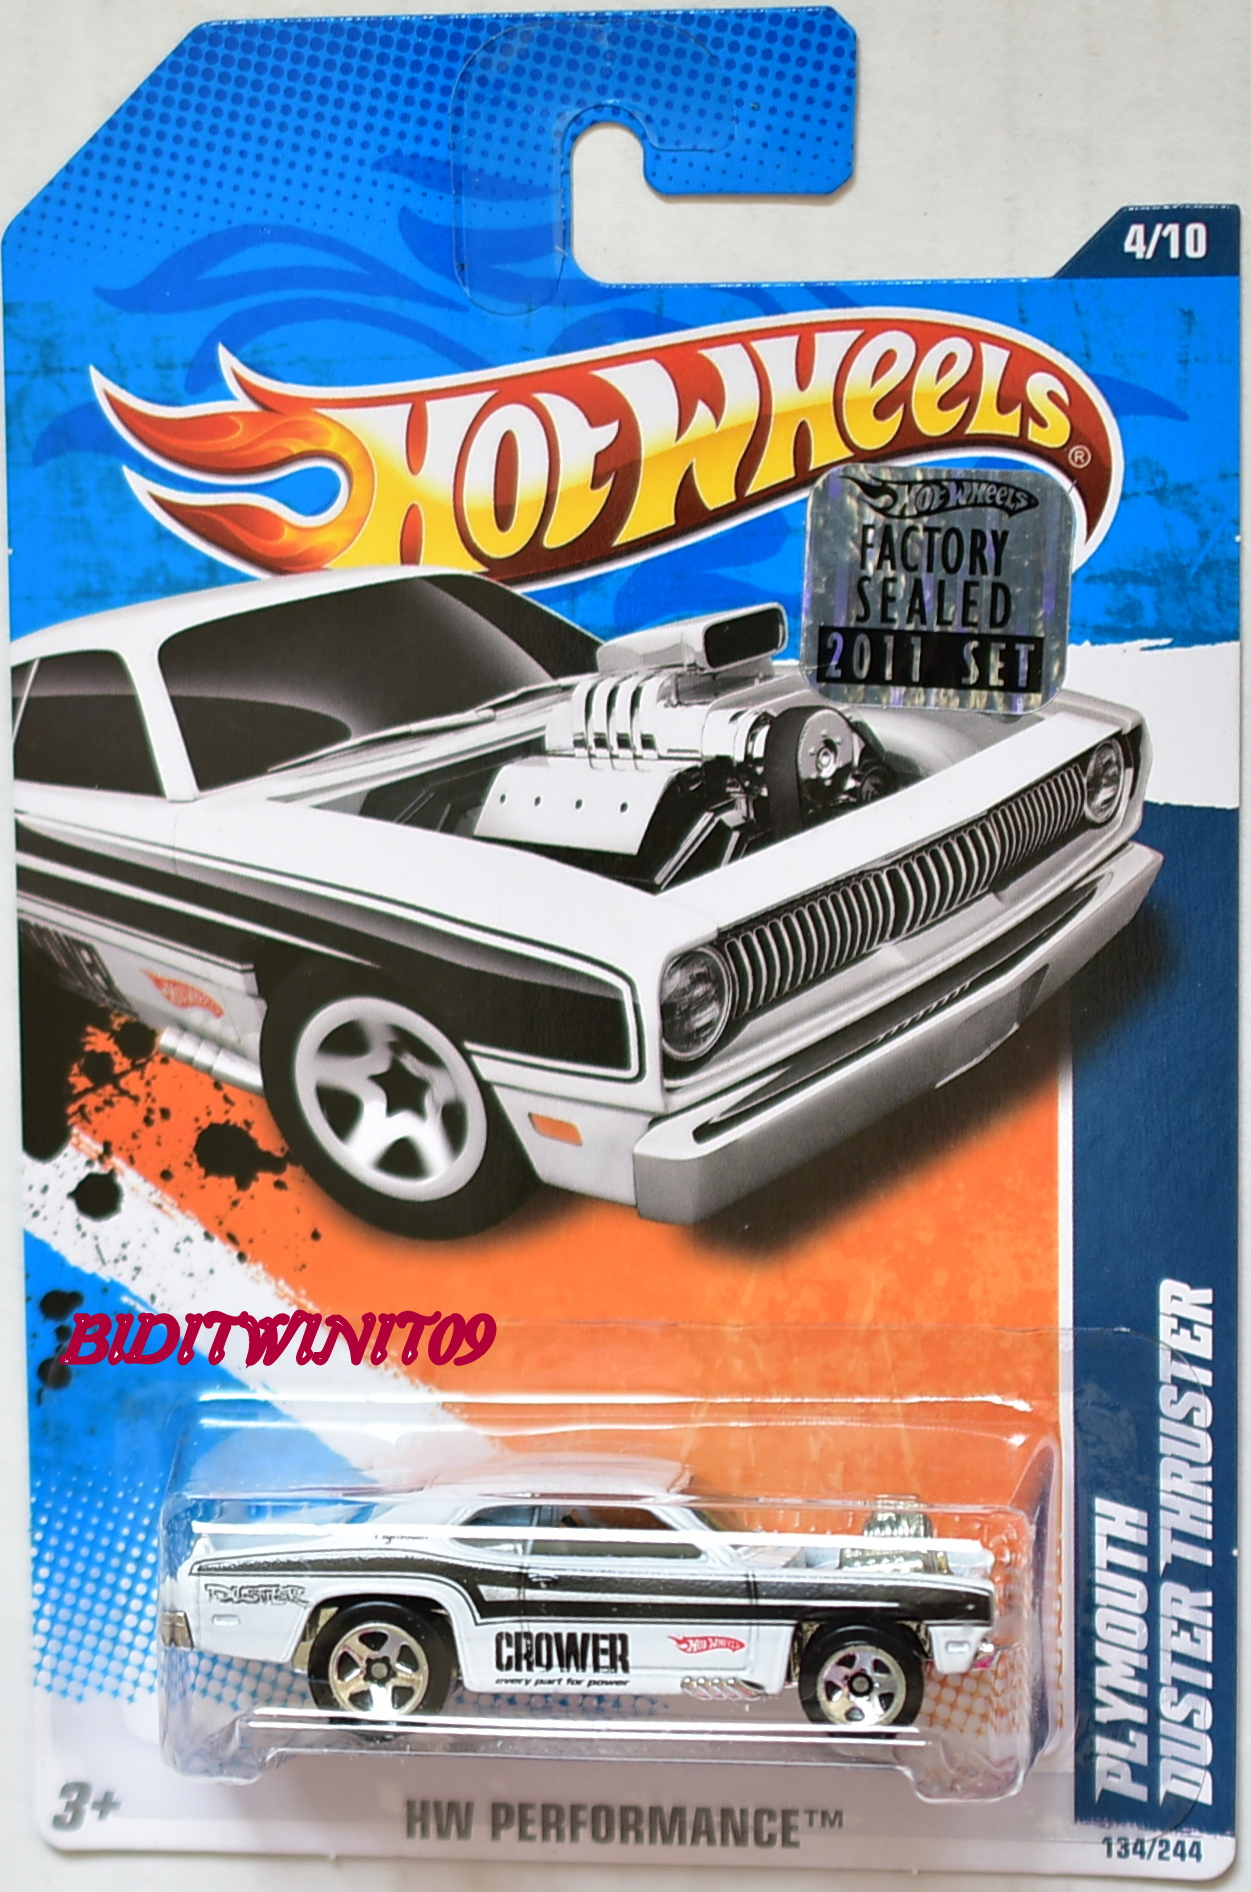 HOT WHEELS 2011 HW PERFORMANCE PLYMOUTH DUSTER THRUSTER WHITE FACTORY SEALED